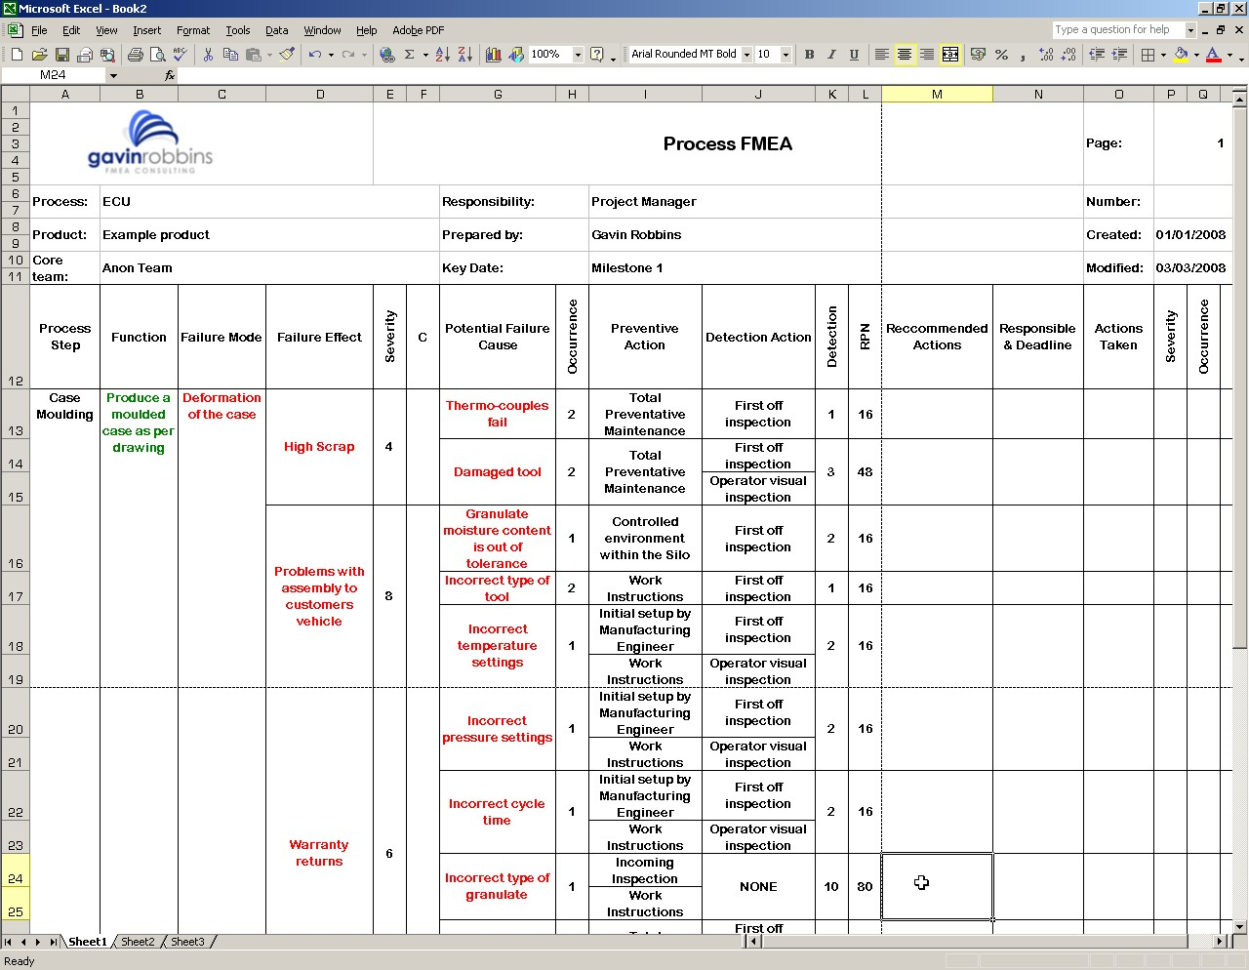 Fmea Spreadsheet Pertaining To Download Fmea Examples, Fmea Templates Excel, Pfmea Example Vda